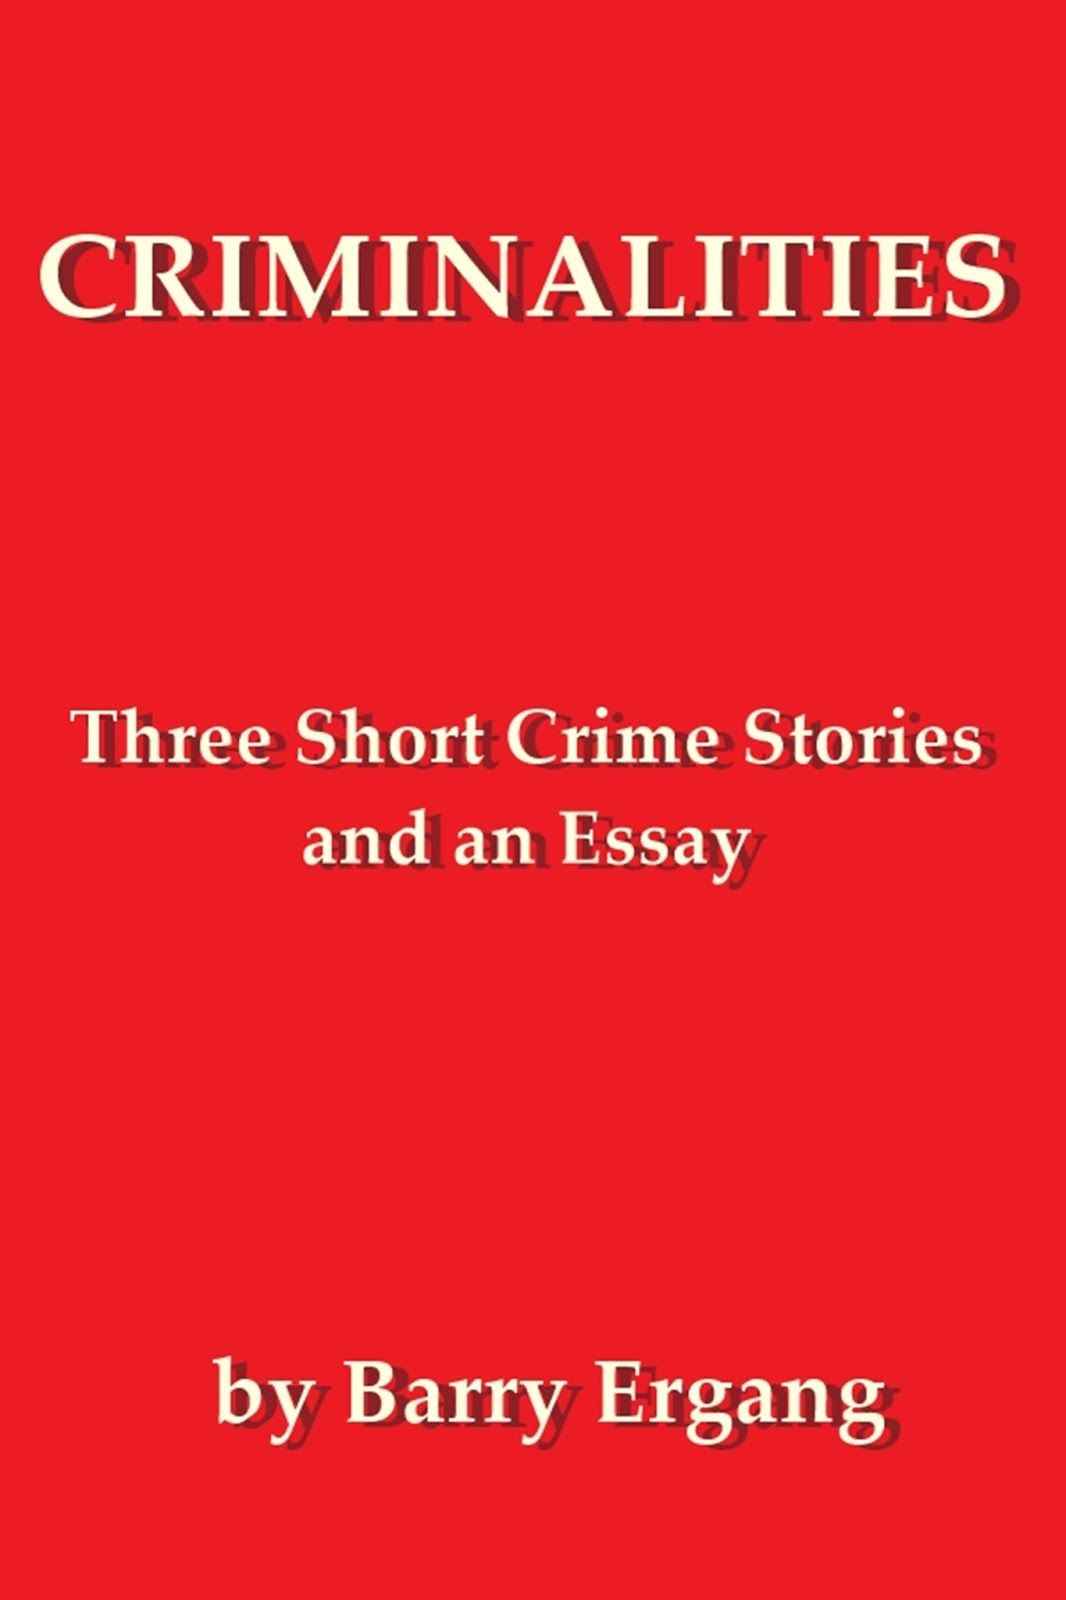 crime story essay Organized crime group analysis team a cja 384 organized crime group analysis in this paper it was asked of us as a team to give an in-depth historical analysis of an organized crime group with this class being about organized crime one would think to write about mobsters, but we decided to think outside the box.